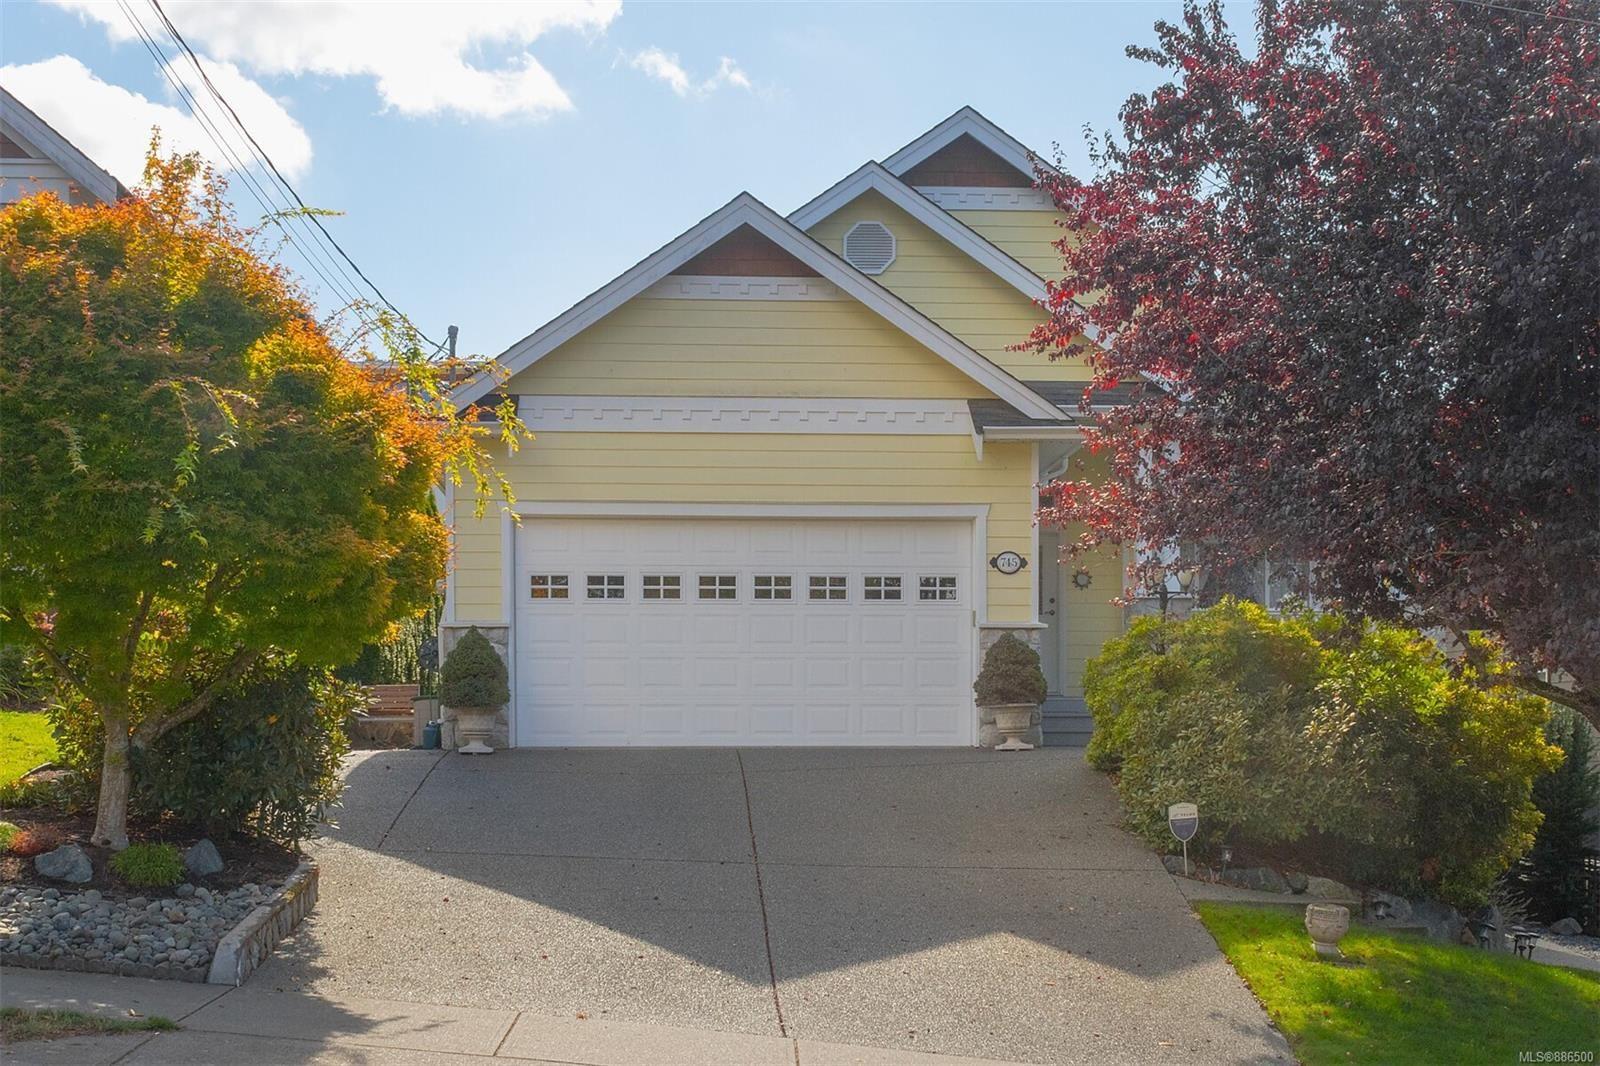 Main Photo: 745 Rogers Ave in : SE High Quadra House for sale (Saanich East)  : MLS®# 886500